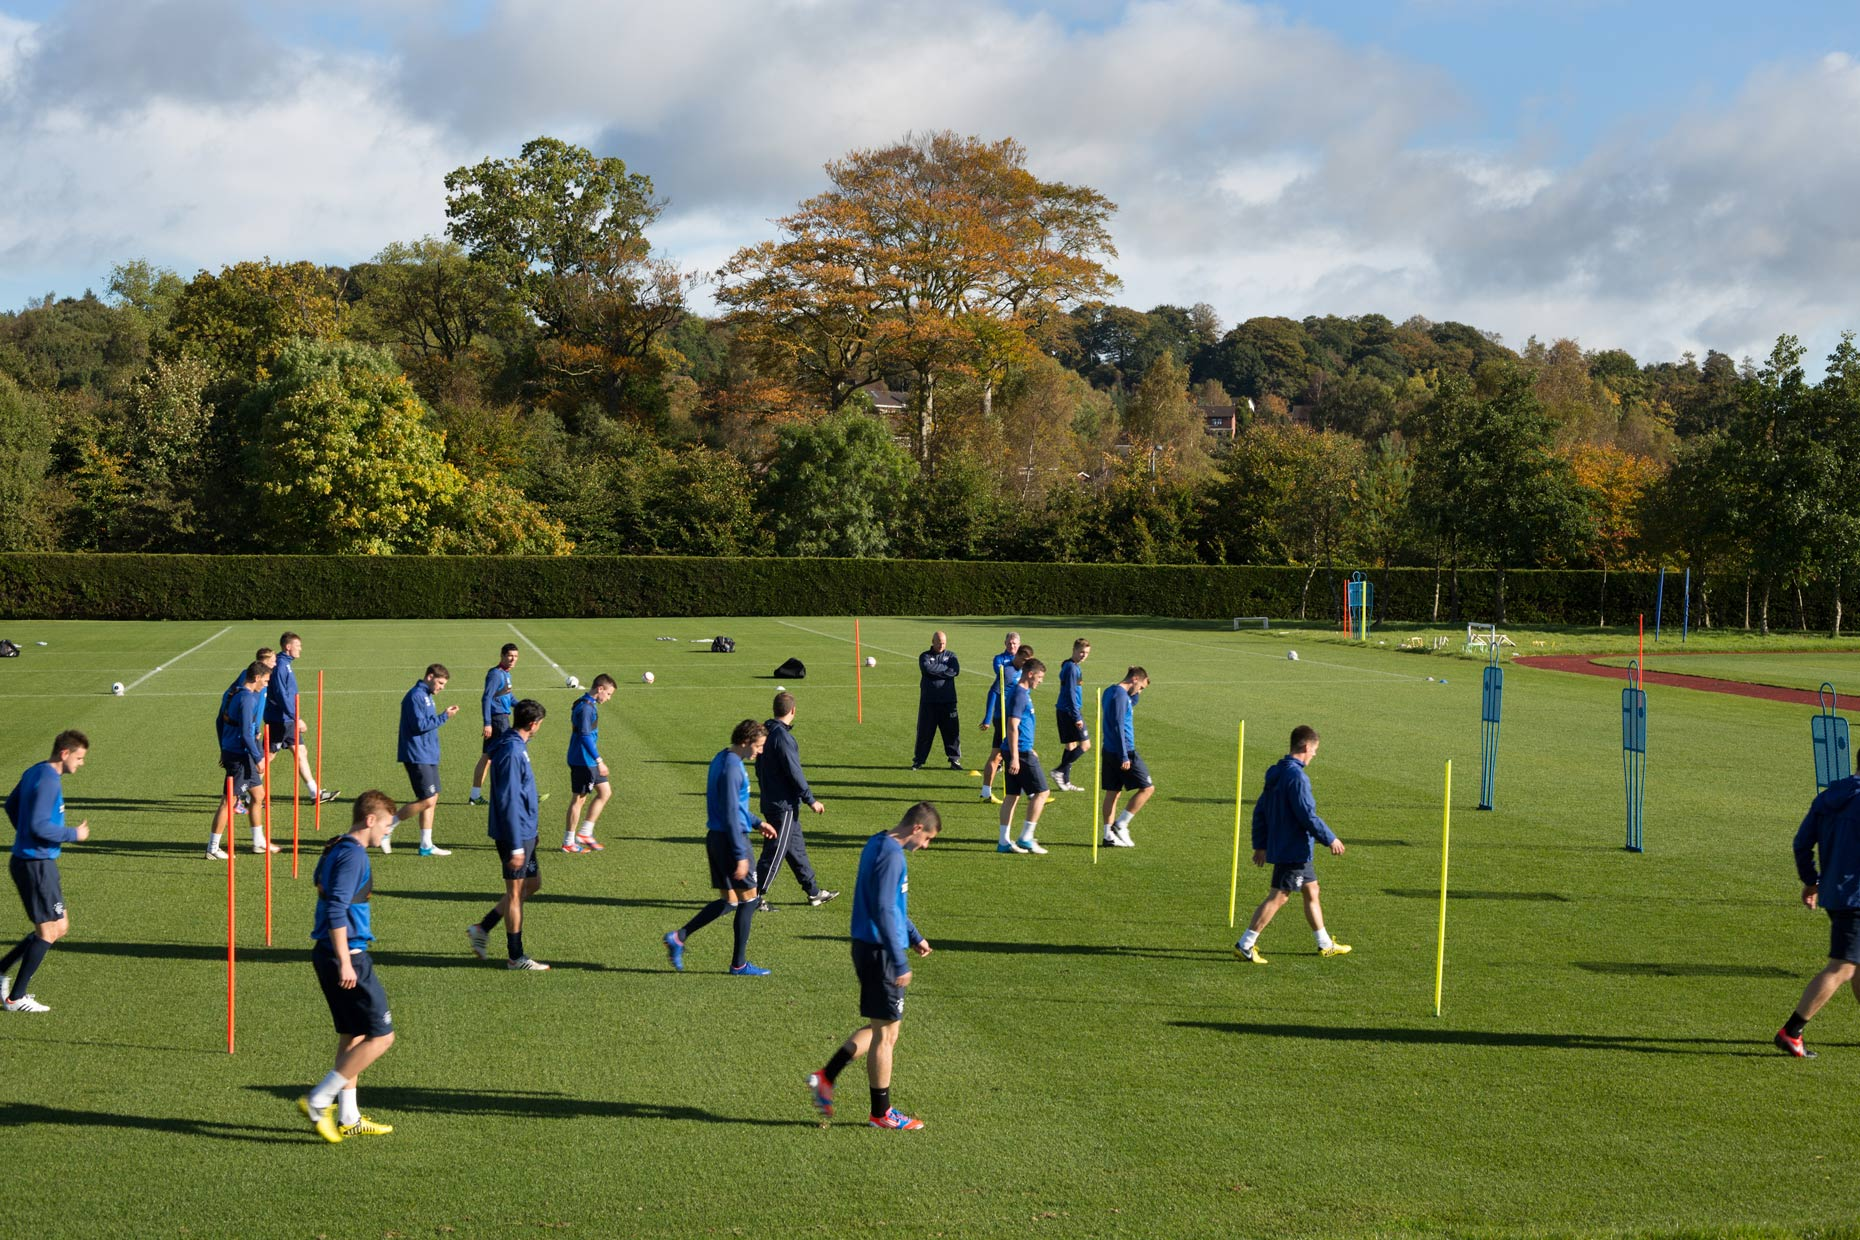 Rangers football club training in Scotland, by photographer Sutton-Hibbert